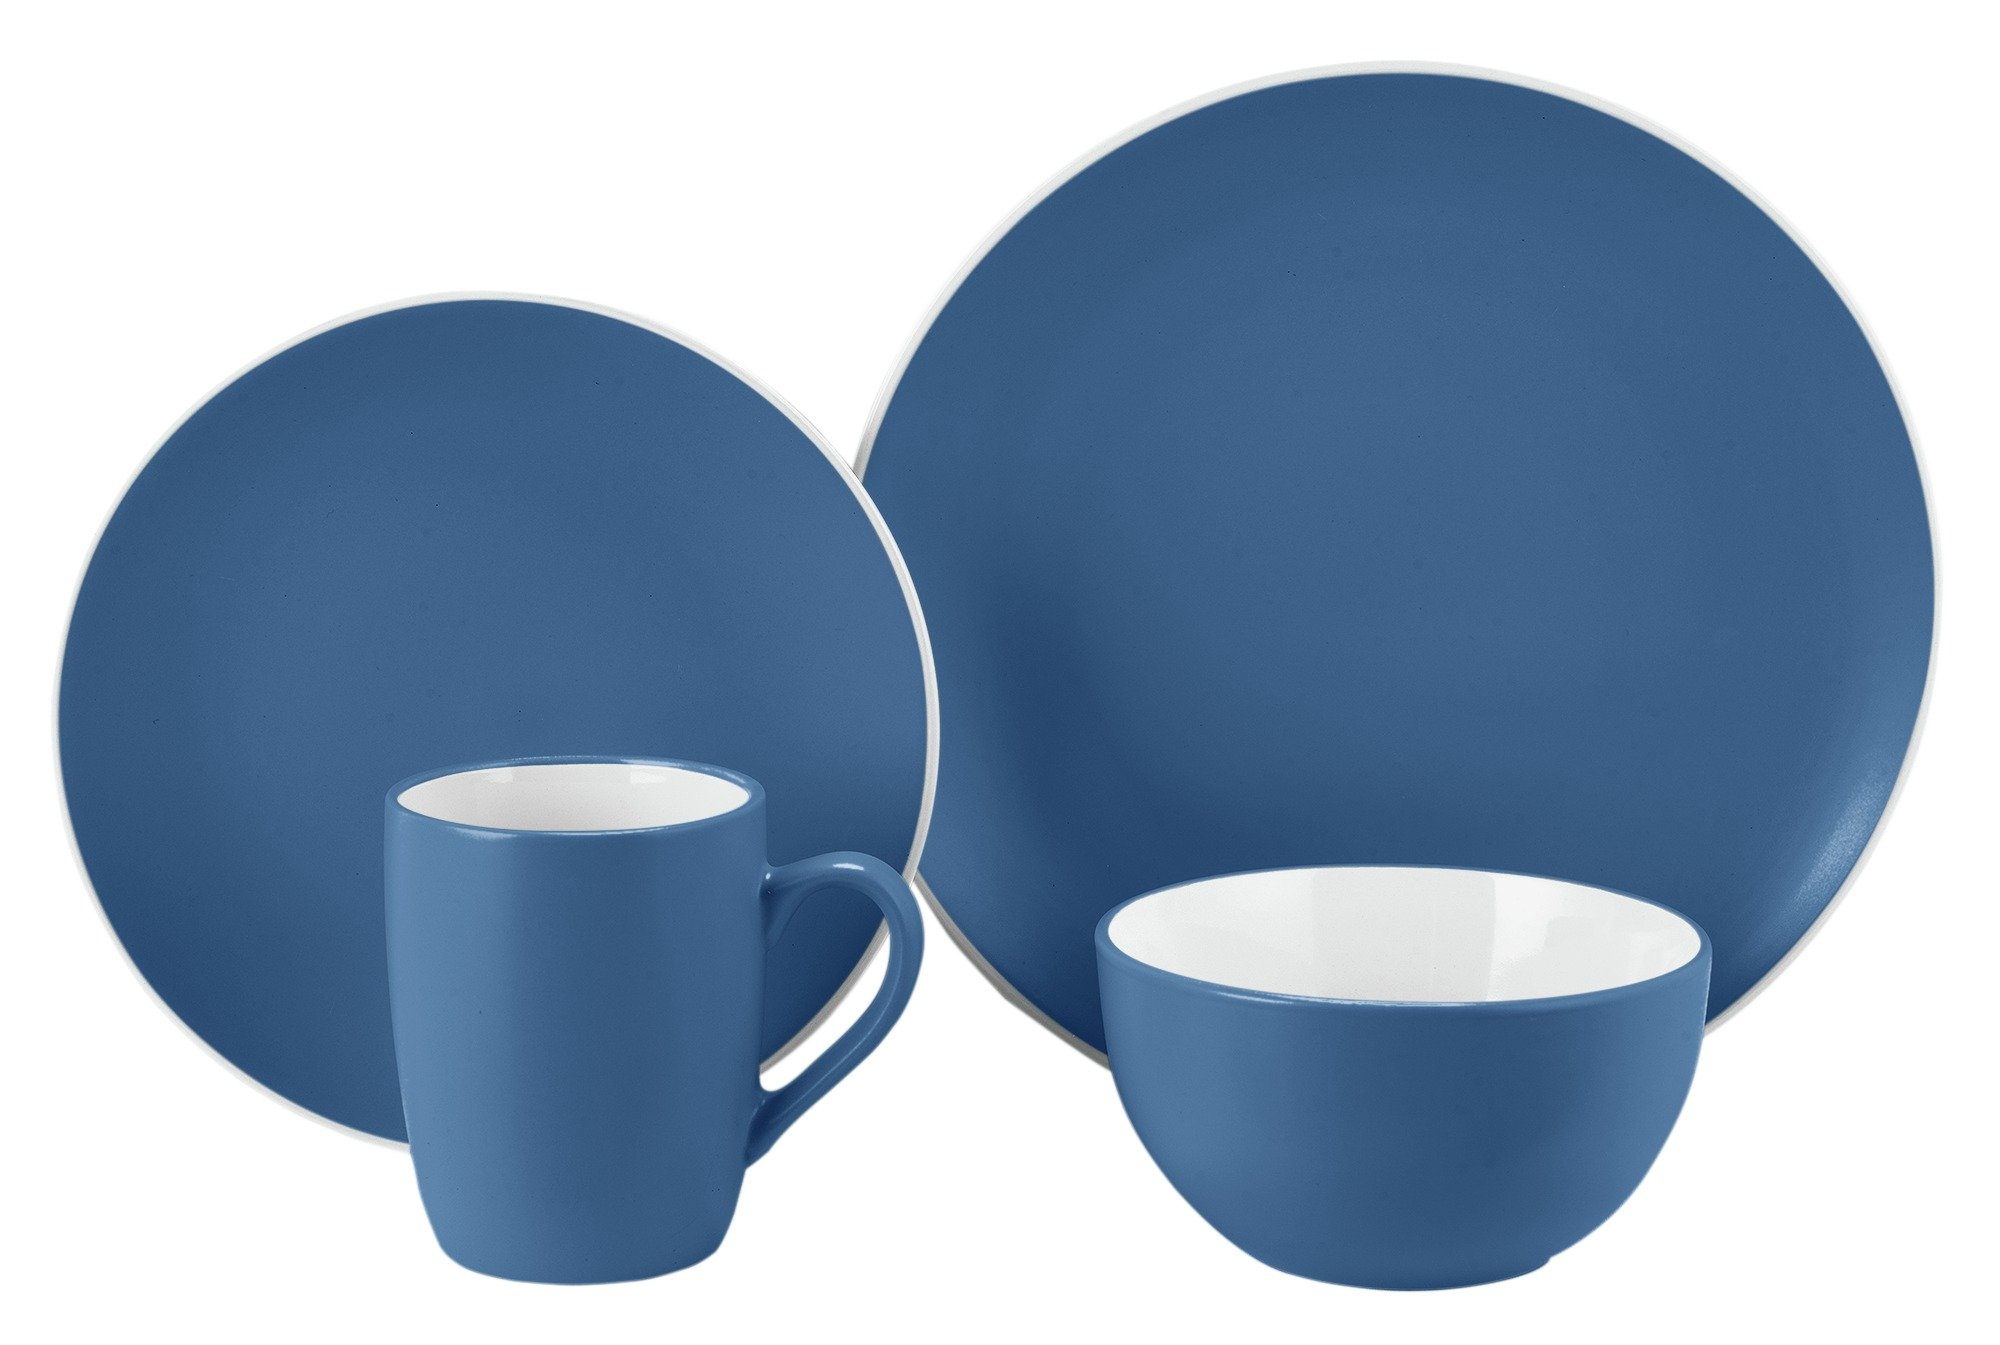 ColourMatch 12 Piece Stoneware Dinner Set - Ink Blue.